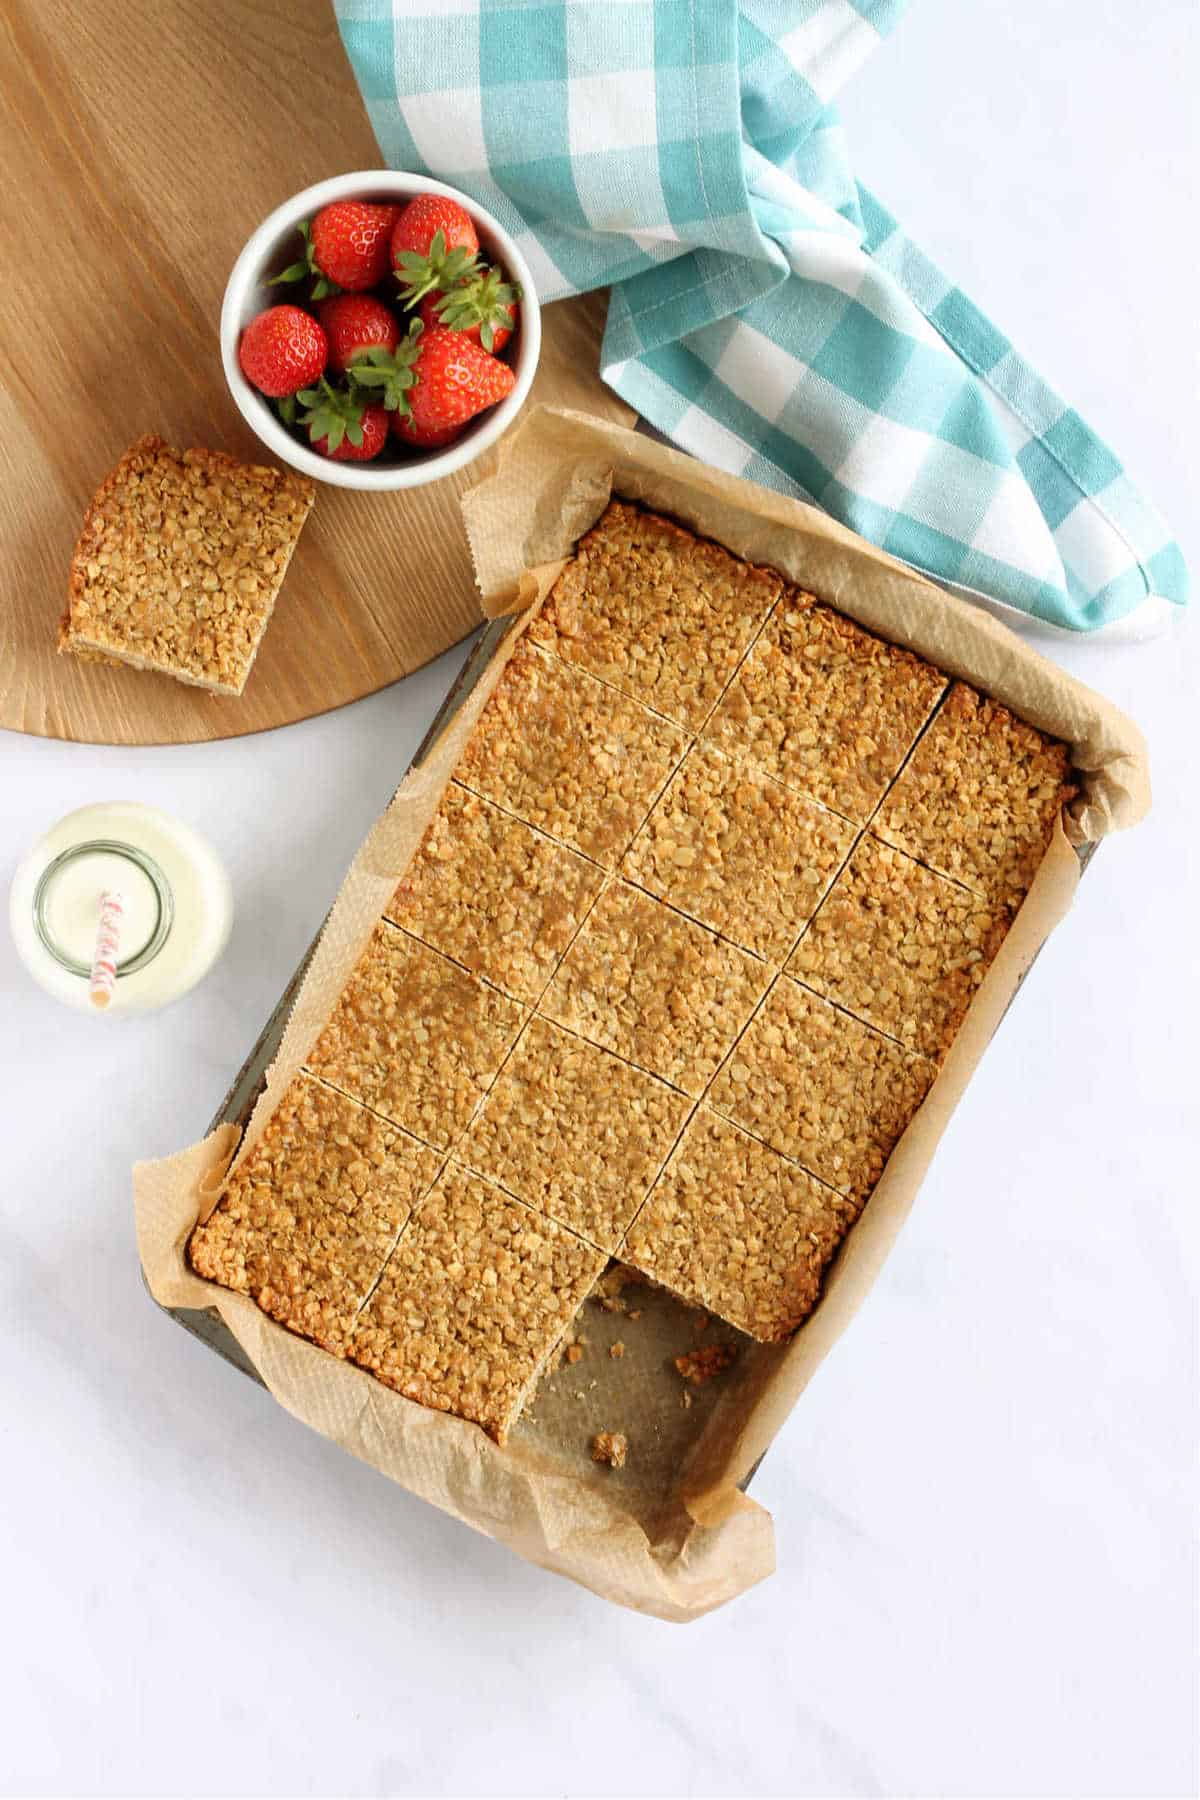 Overhead shot of a tray of baked flapjacks